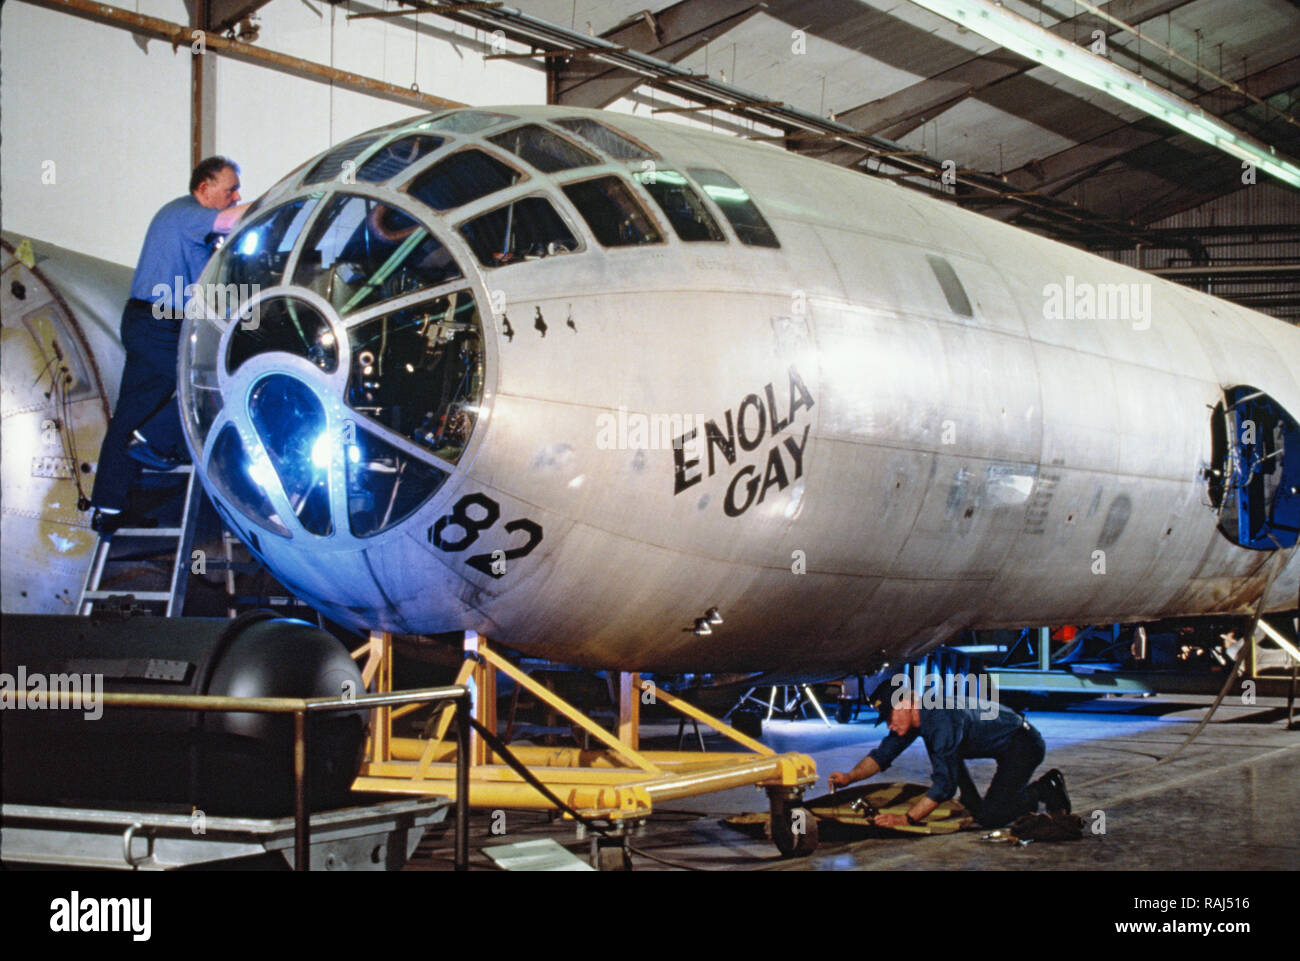 The Enola Gay being refurbished for exhibition at the Smithsonian Air and Space Museum. Photo by Dennis Brack Stock Photo